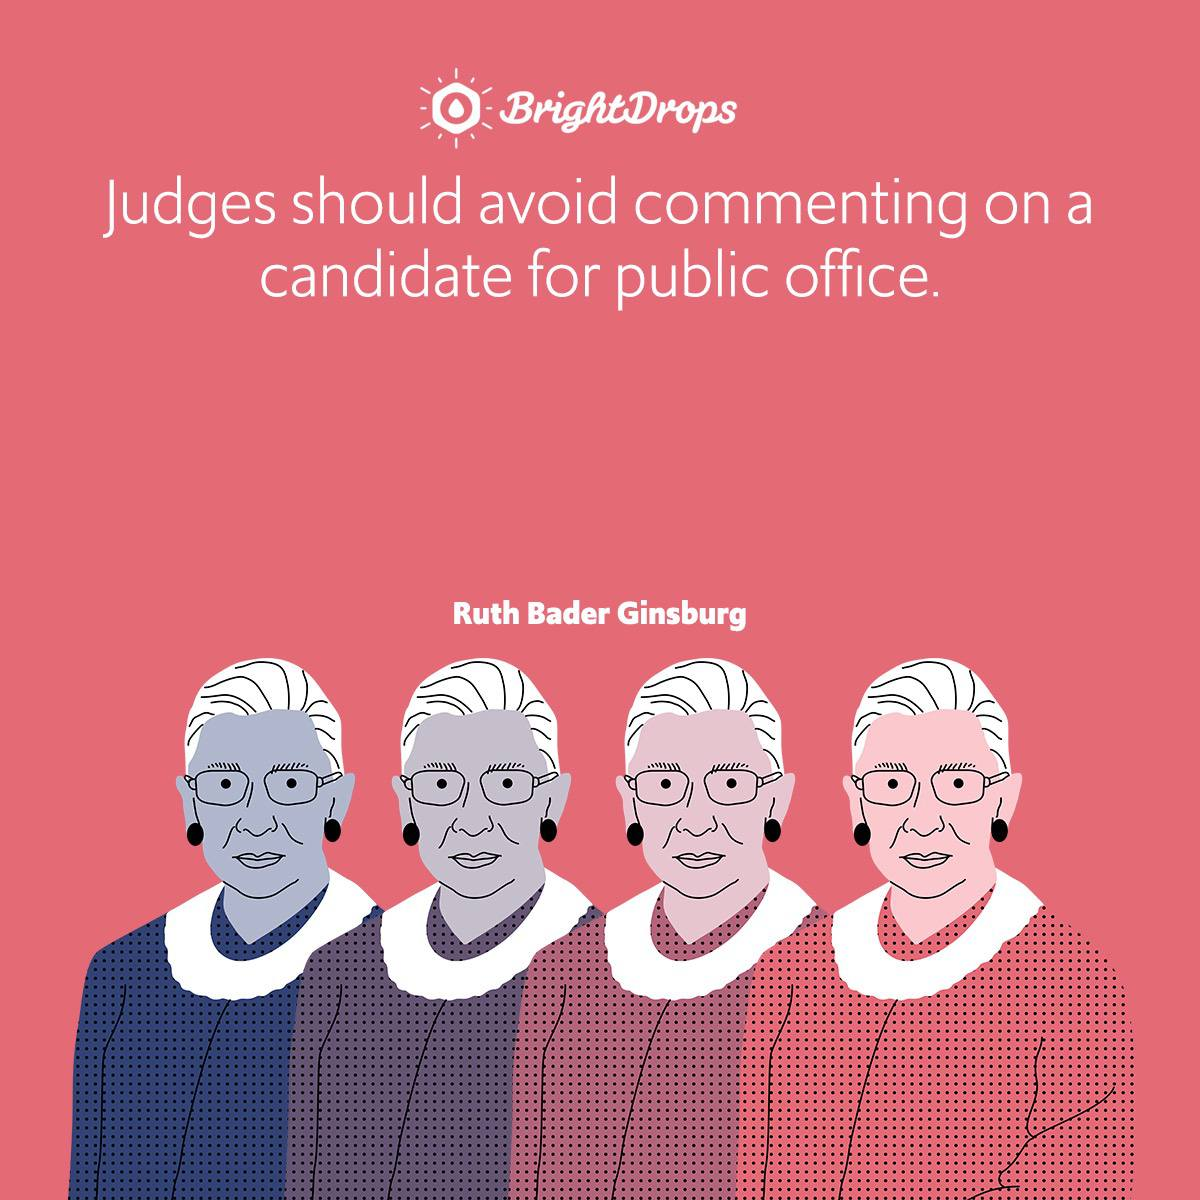 Judges should avoid commenting on a candidate for public office.